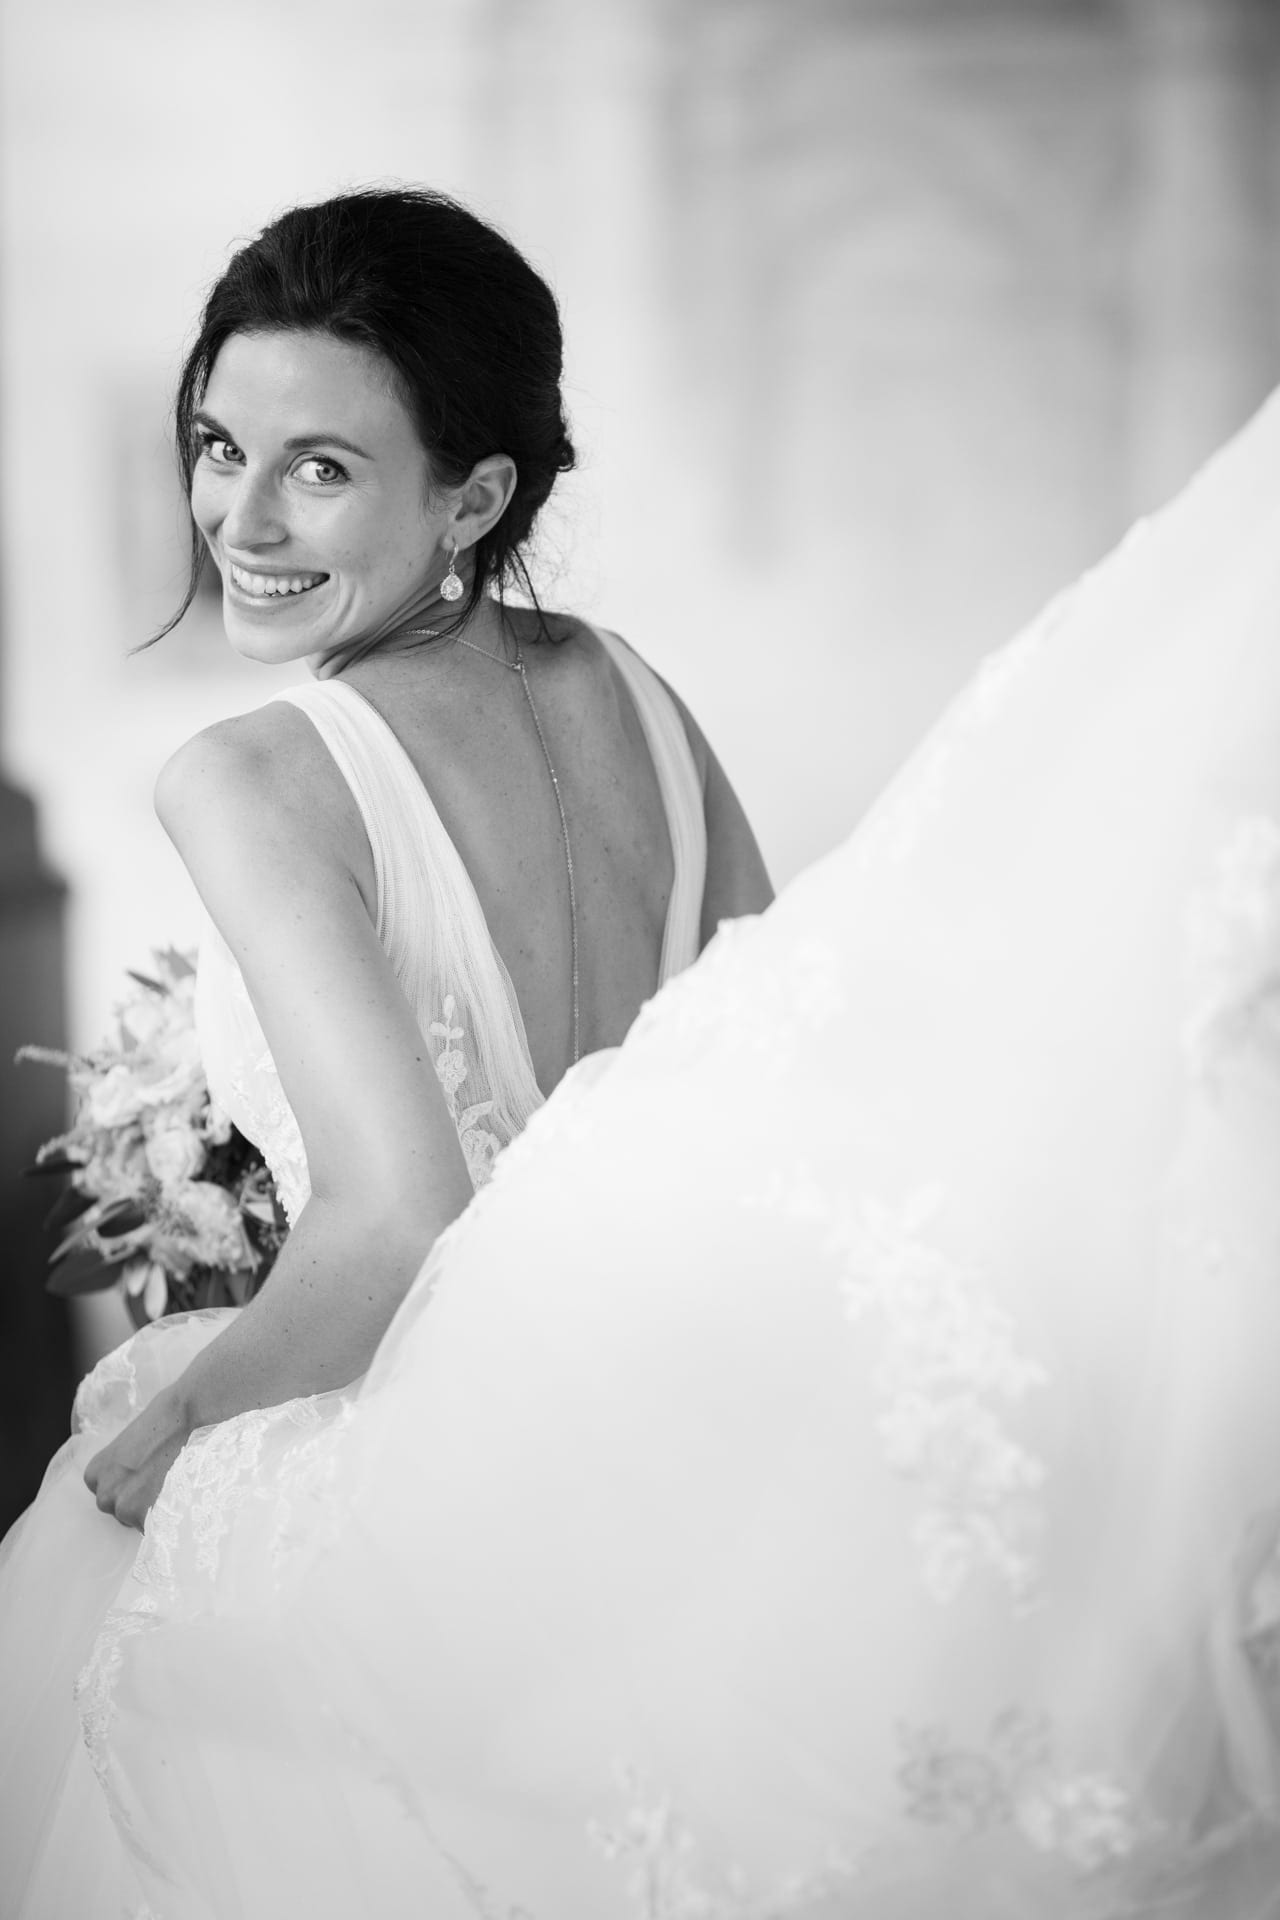 https://righiphotography-com.s3.eu-central-1.amazonaws.com/wp-content/uploads/2020/02/02183347/Weddin-Photo-Classic-Style-Studio-Fotografico-Righi-RIGHI-24.jpg